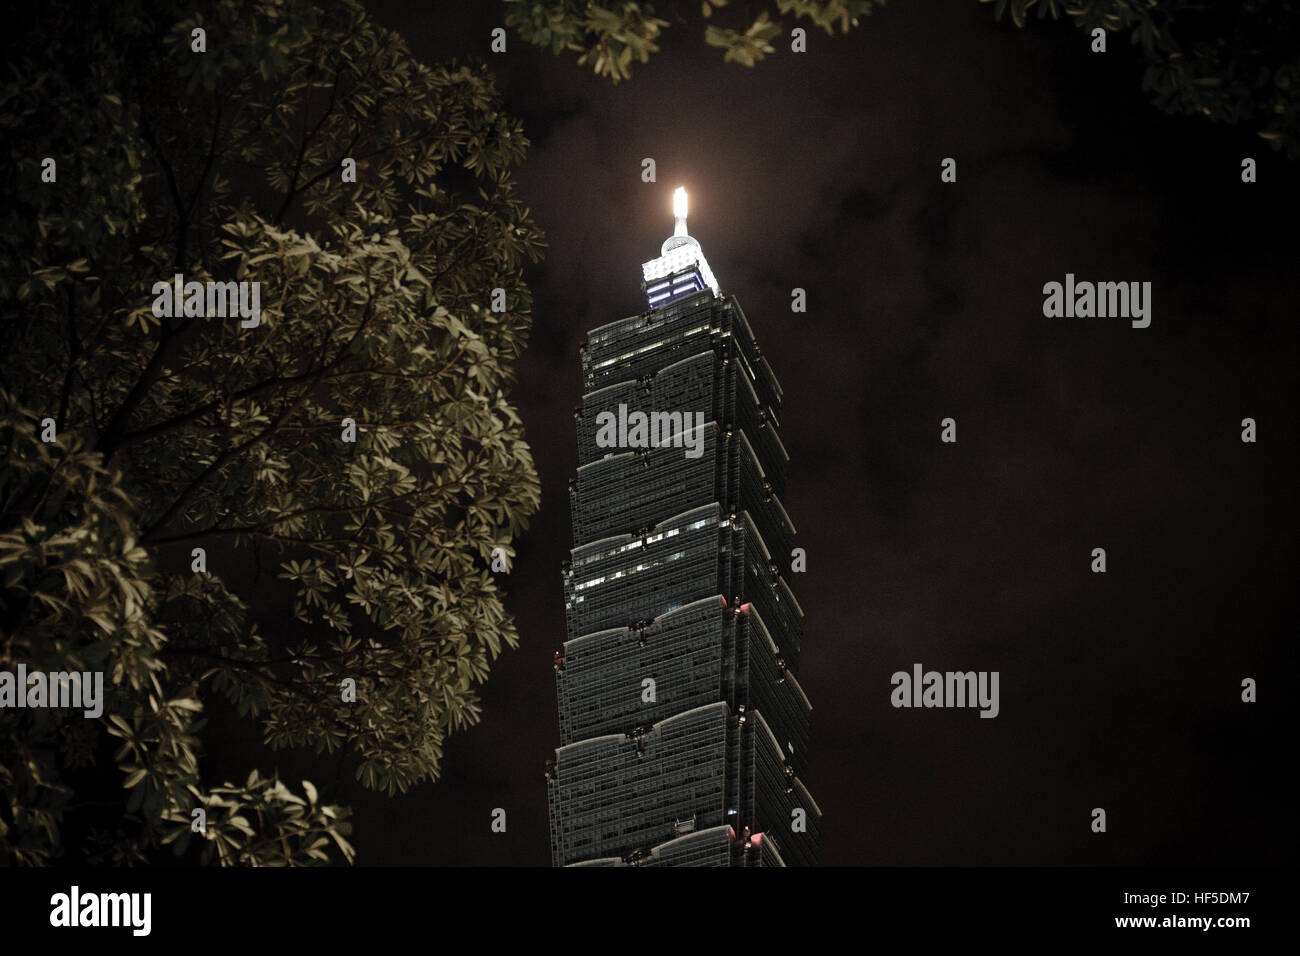 The 101 Tower in Taipei (Taiwan capital, Taipeh), finished in 2004 with 509 meters high, seen at night. - Stock Image